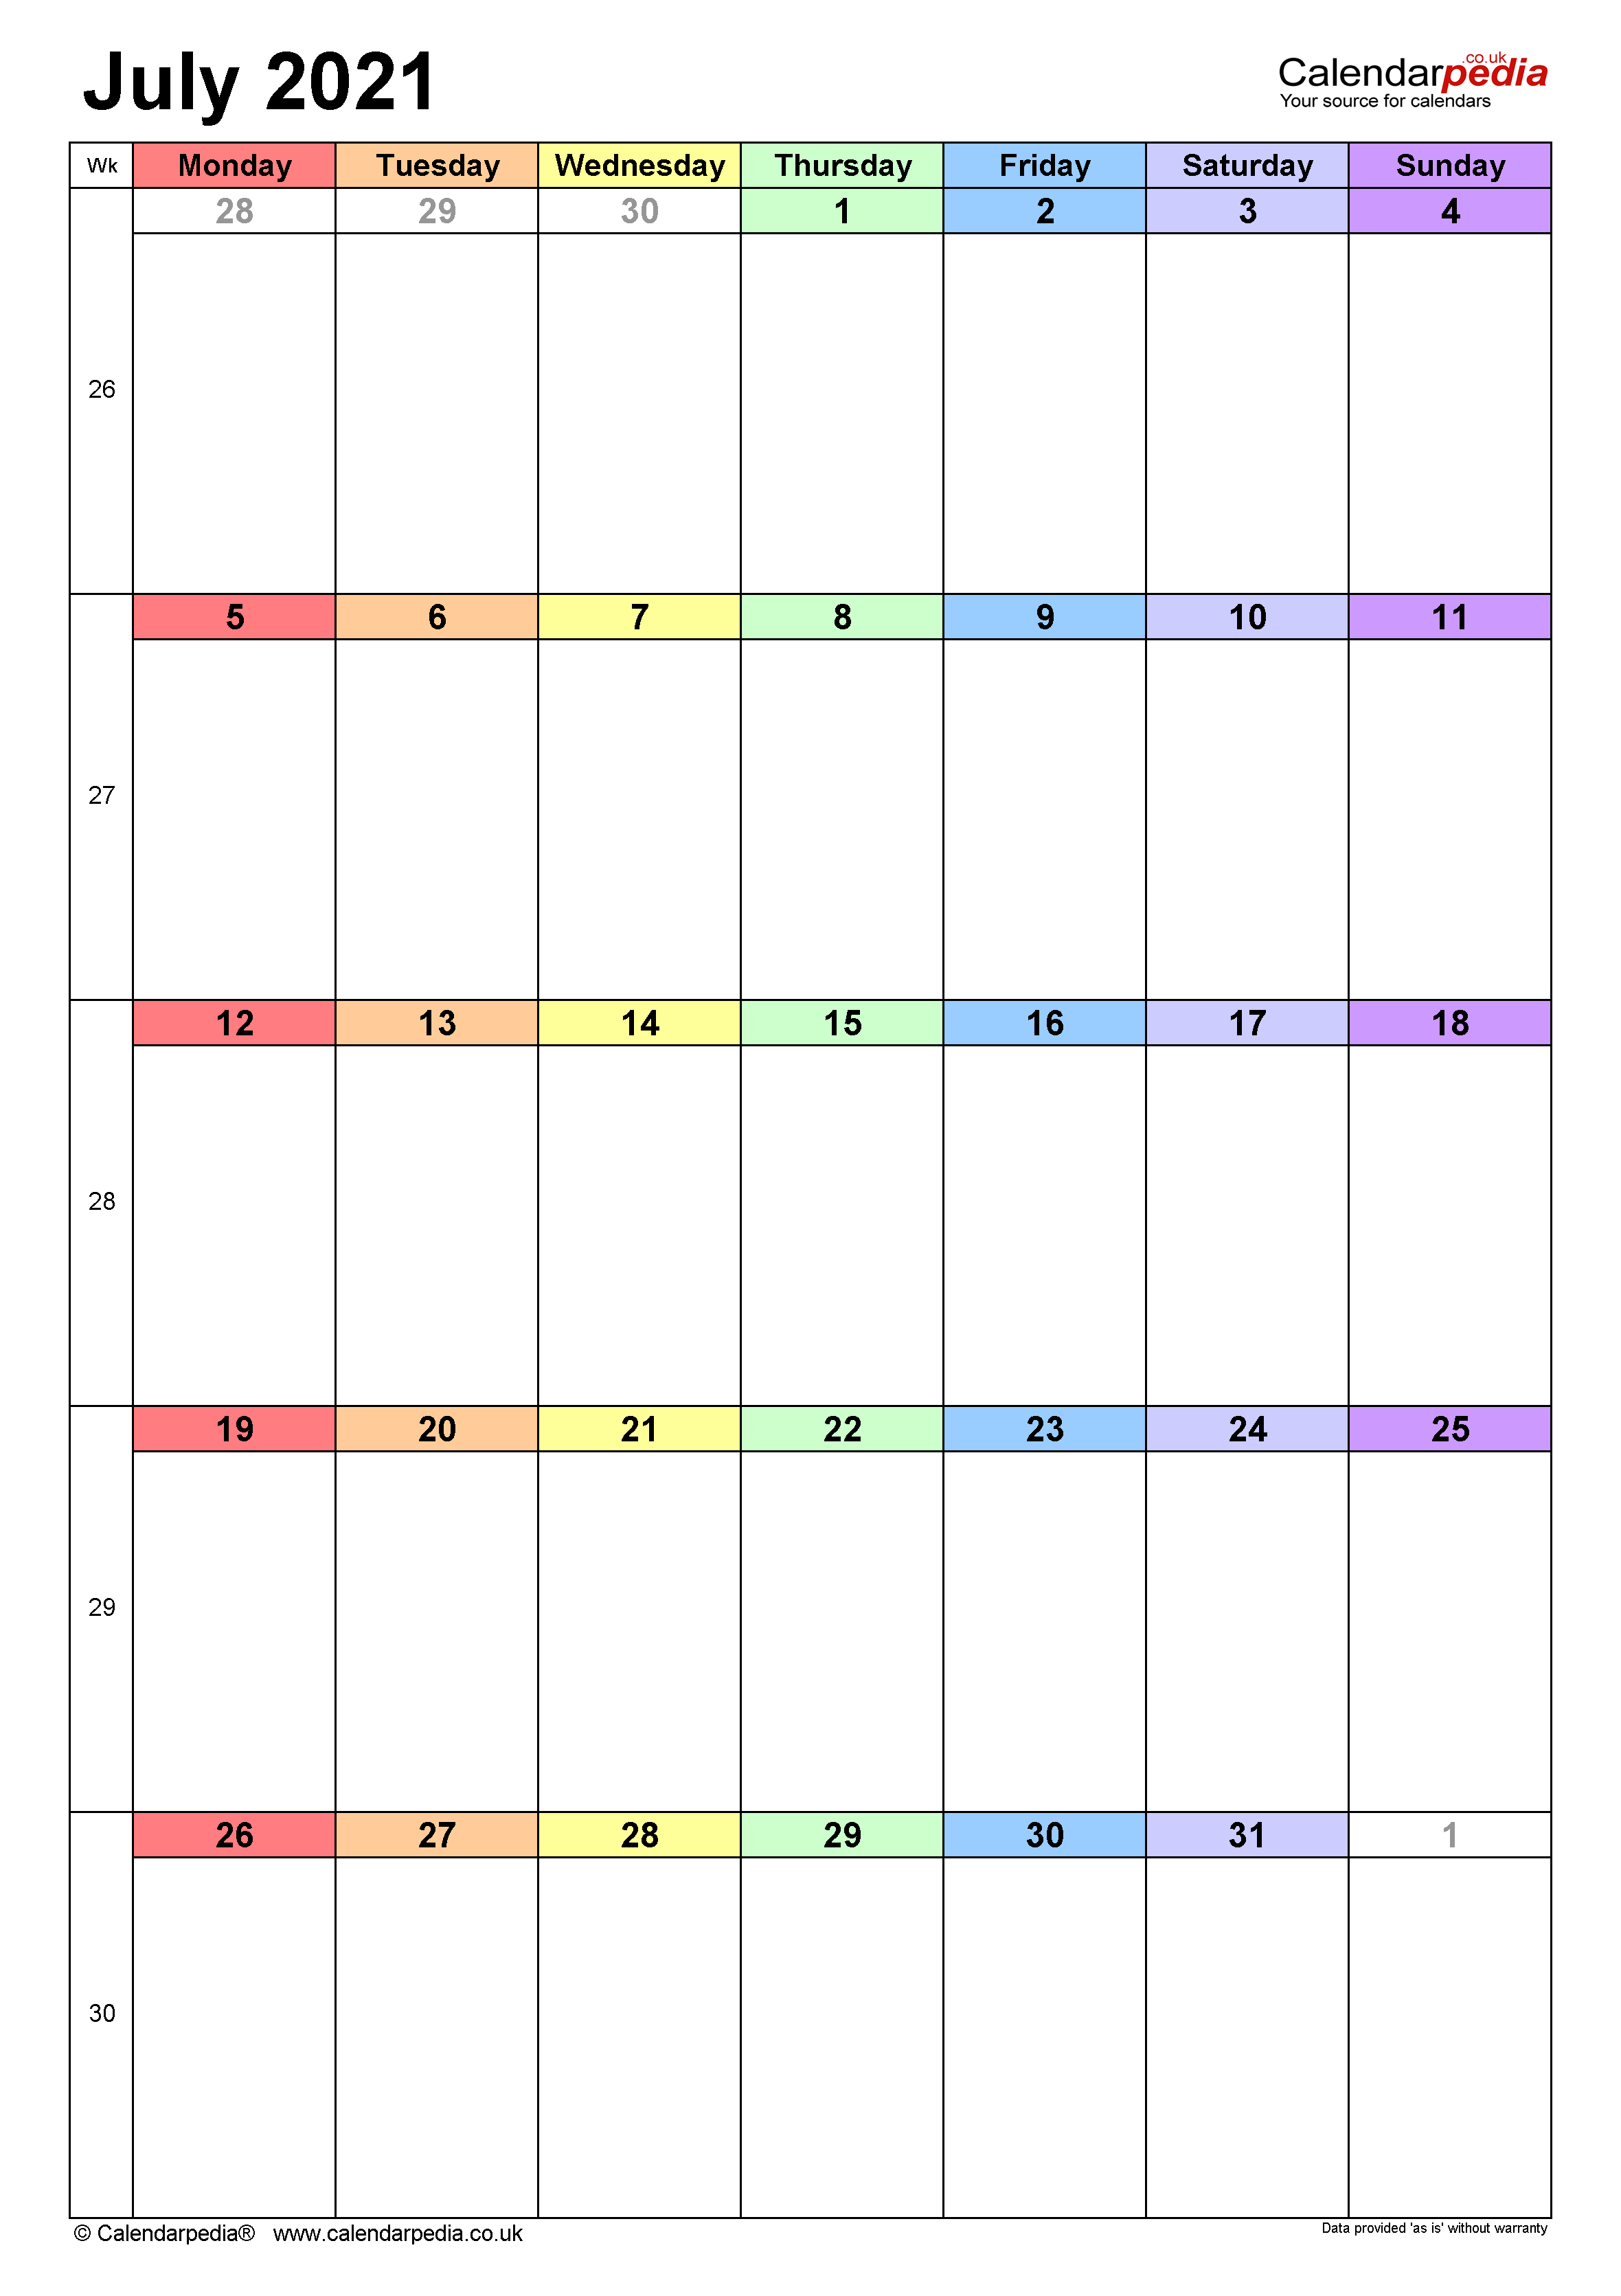 Calendar July 2021 (UK) with Excel, Word and PDF templates